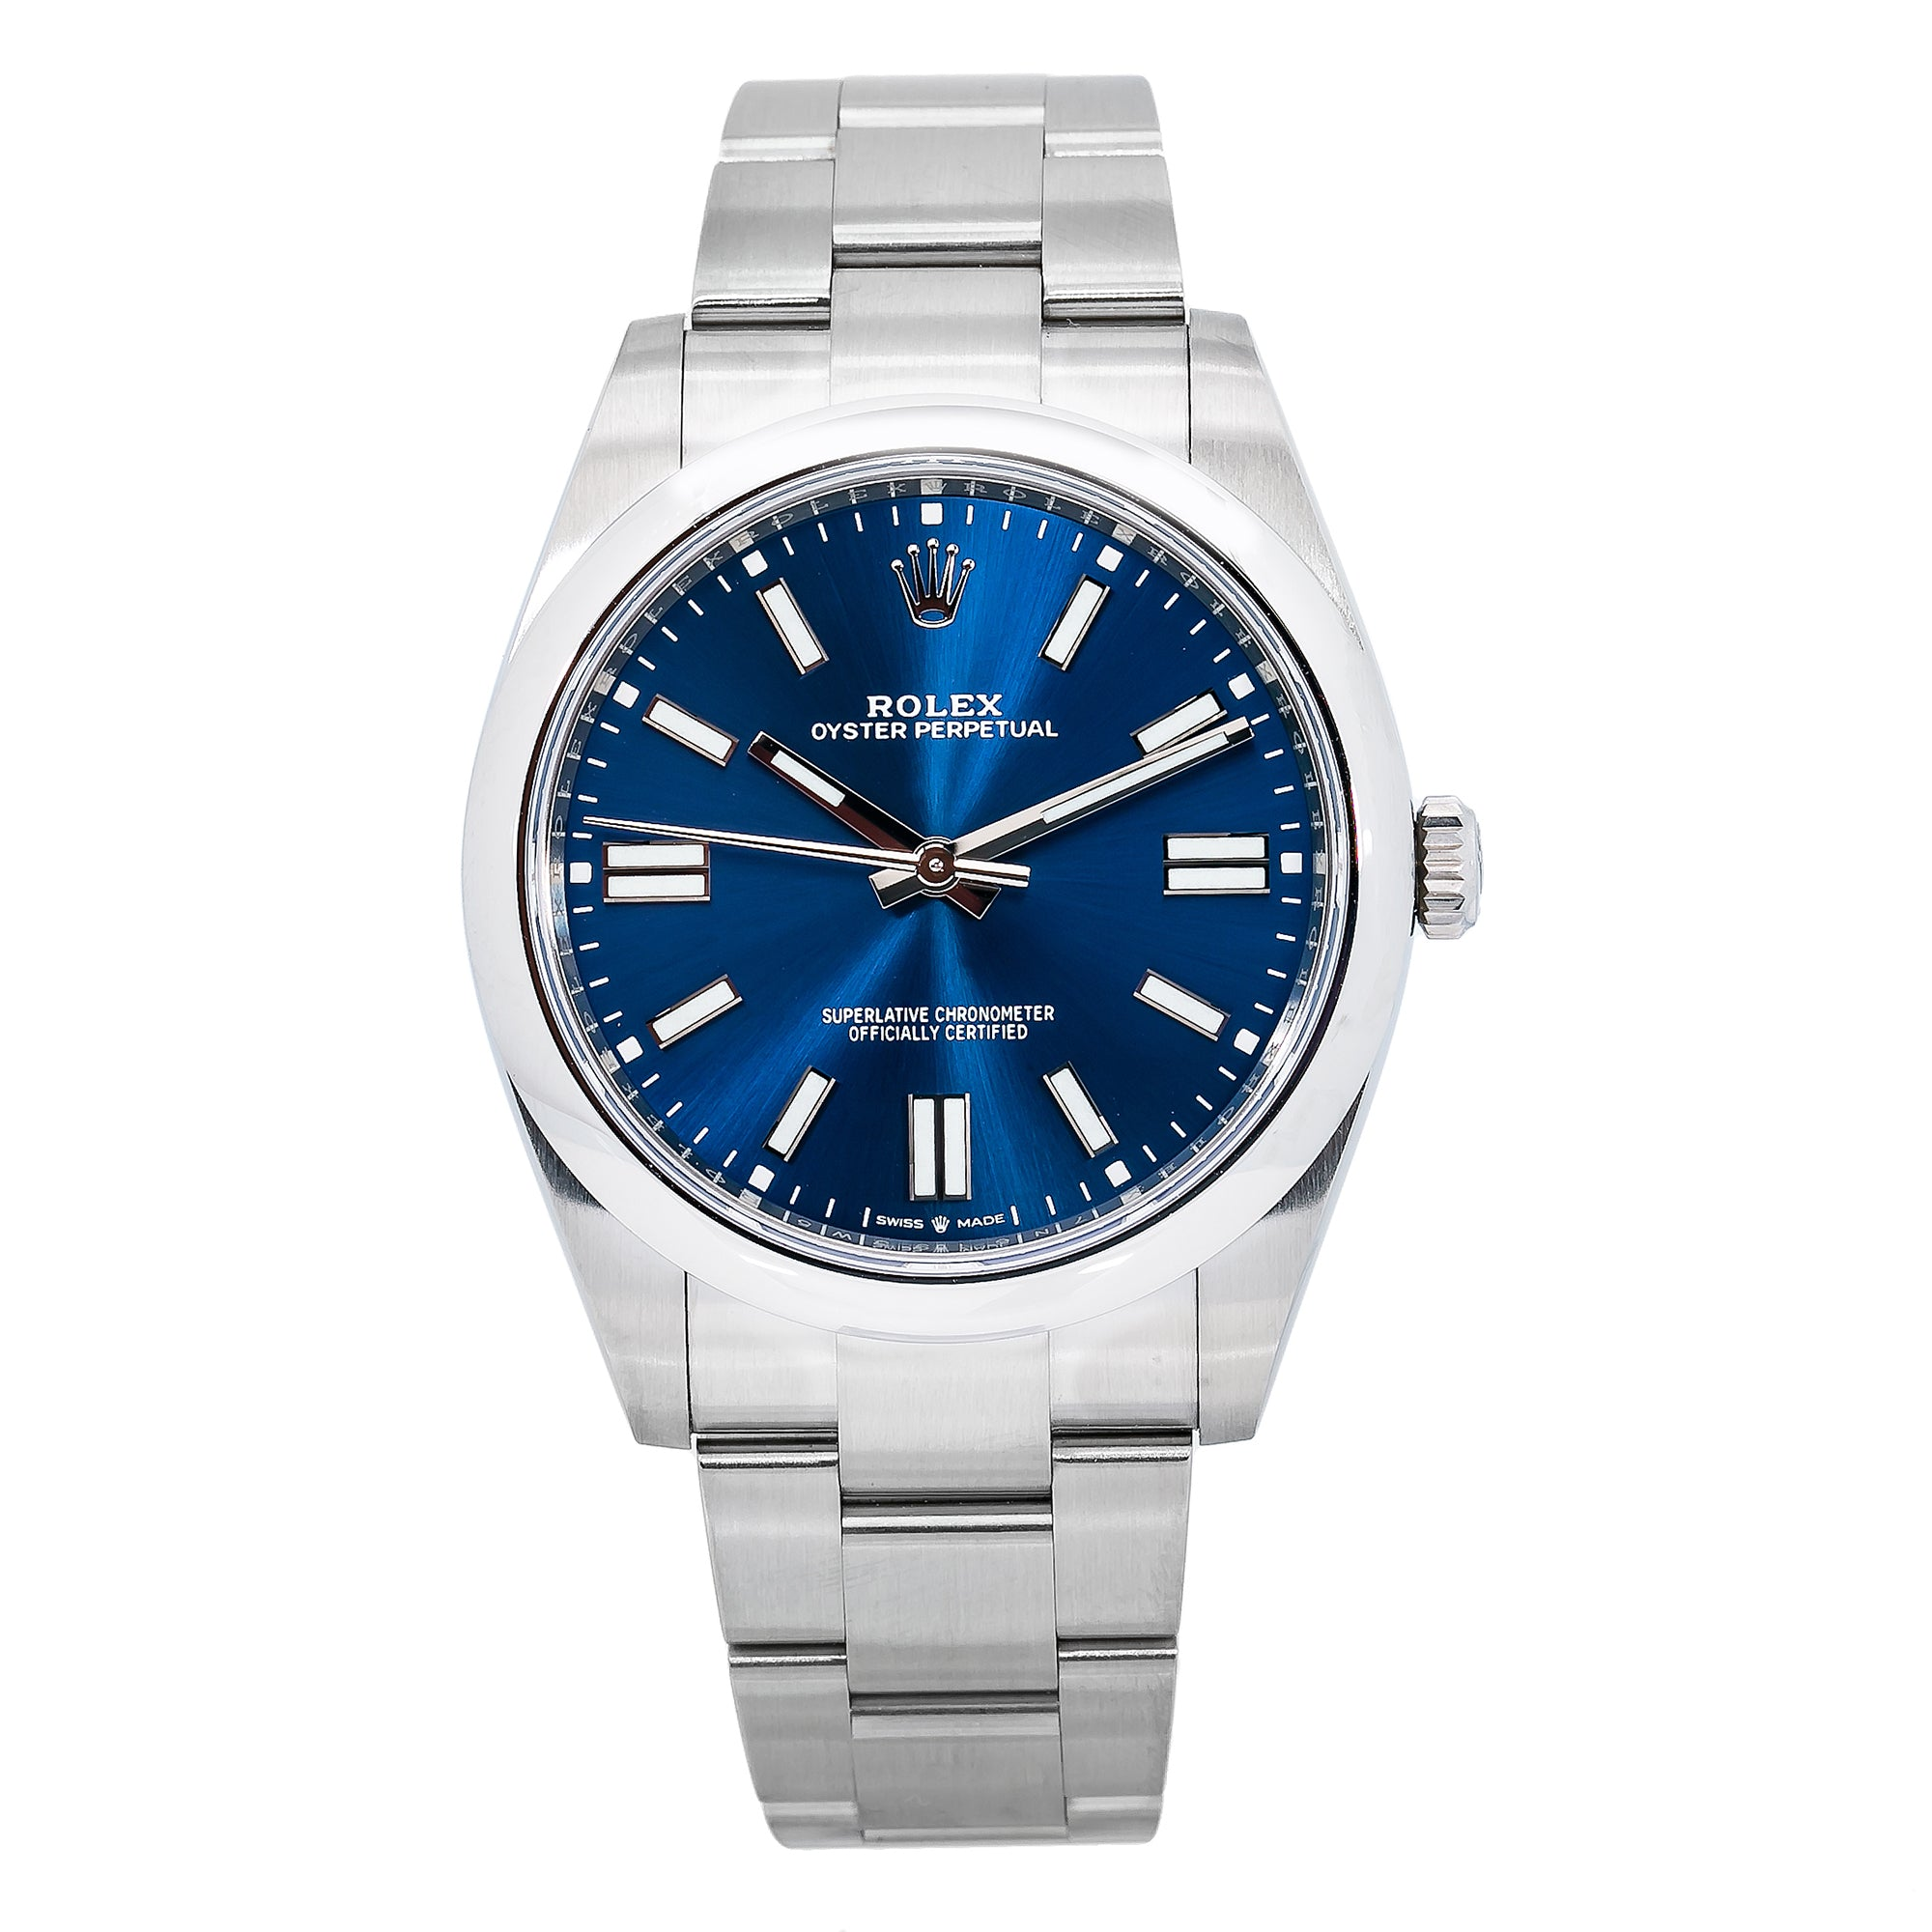 Rolex Oyster Perpetual 124300 41MM Blue Dial With Stainless Steel Oyster Bracelet